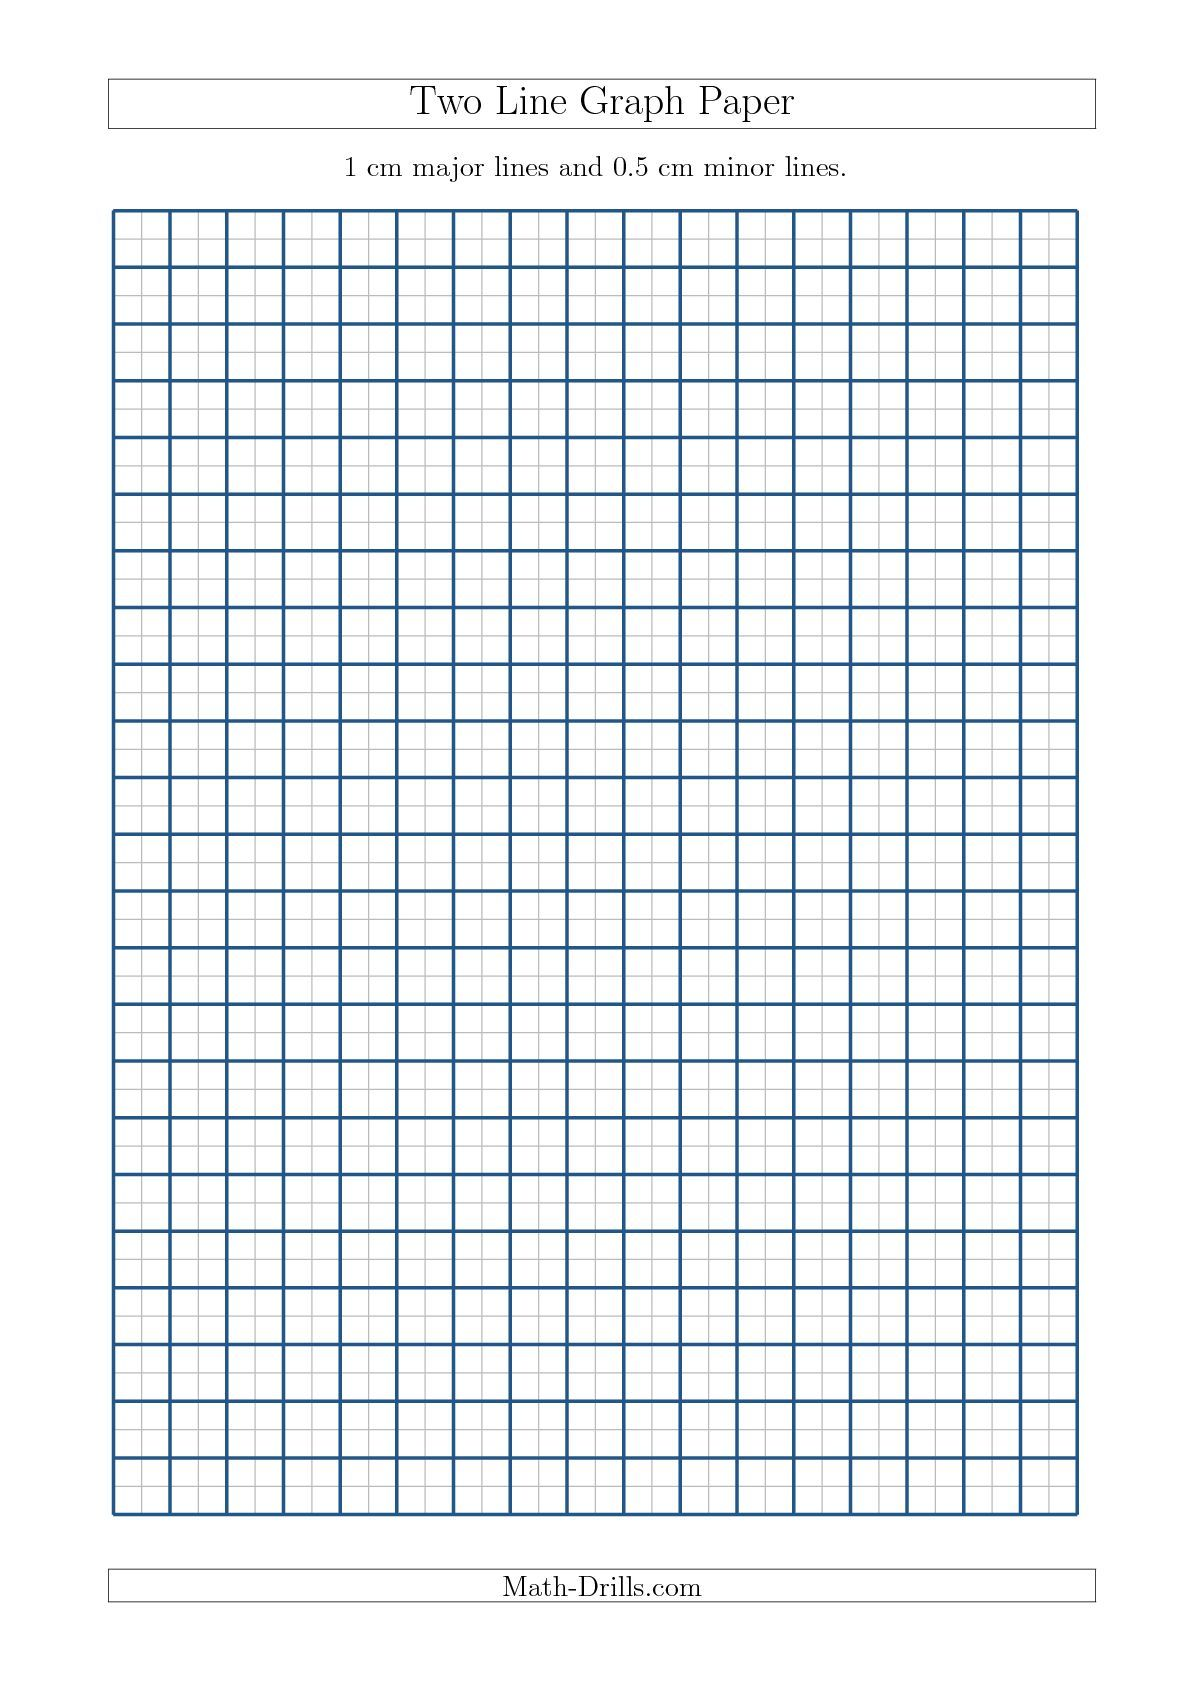 Two Line Graph Paper With  Cm Major Lines And  Cm Minor Lines